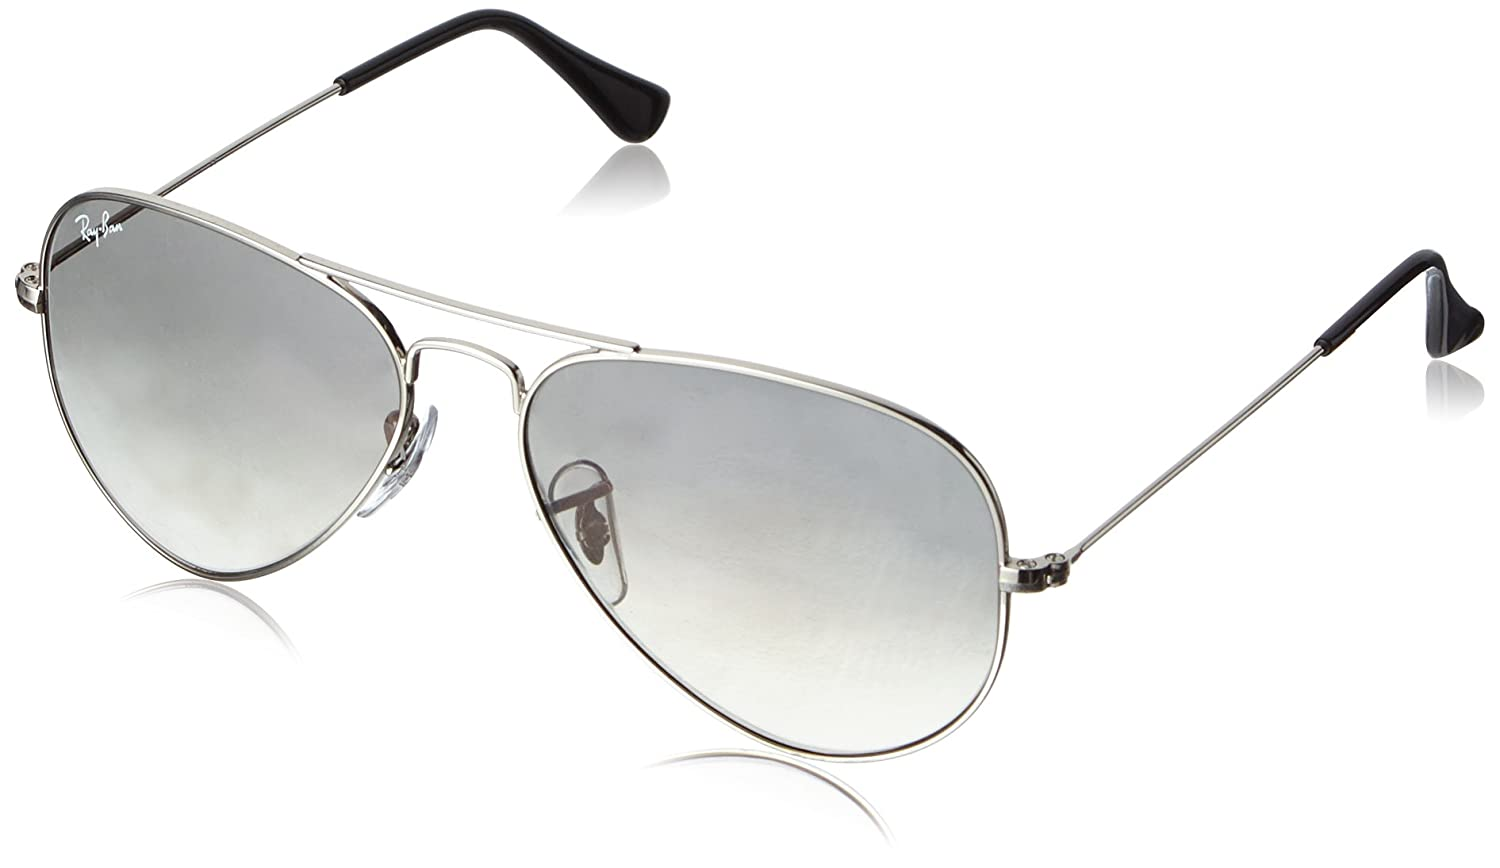 ray ban aviators glass lenses  amazon: ray ban 0rb3025 aviator metal non polarized sunglasses, silver/ crystal grey gradient, 55mm: ray ban: clothing